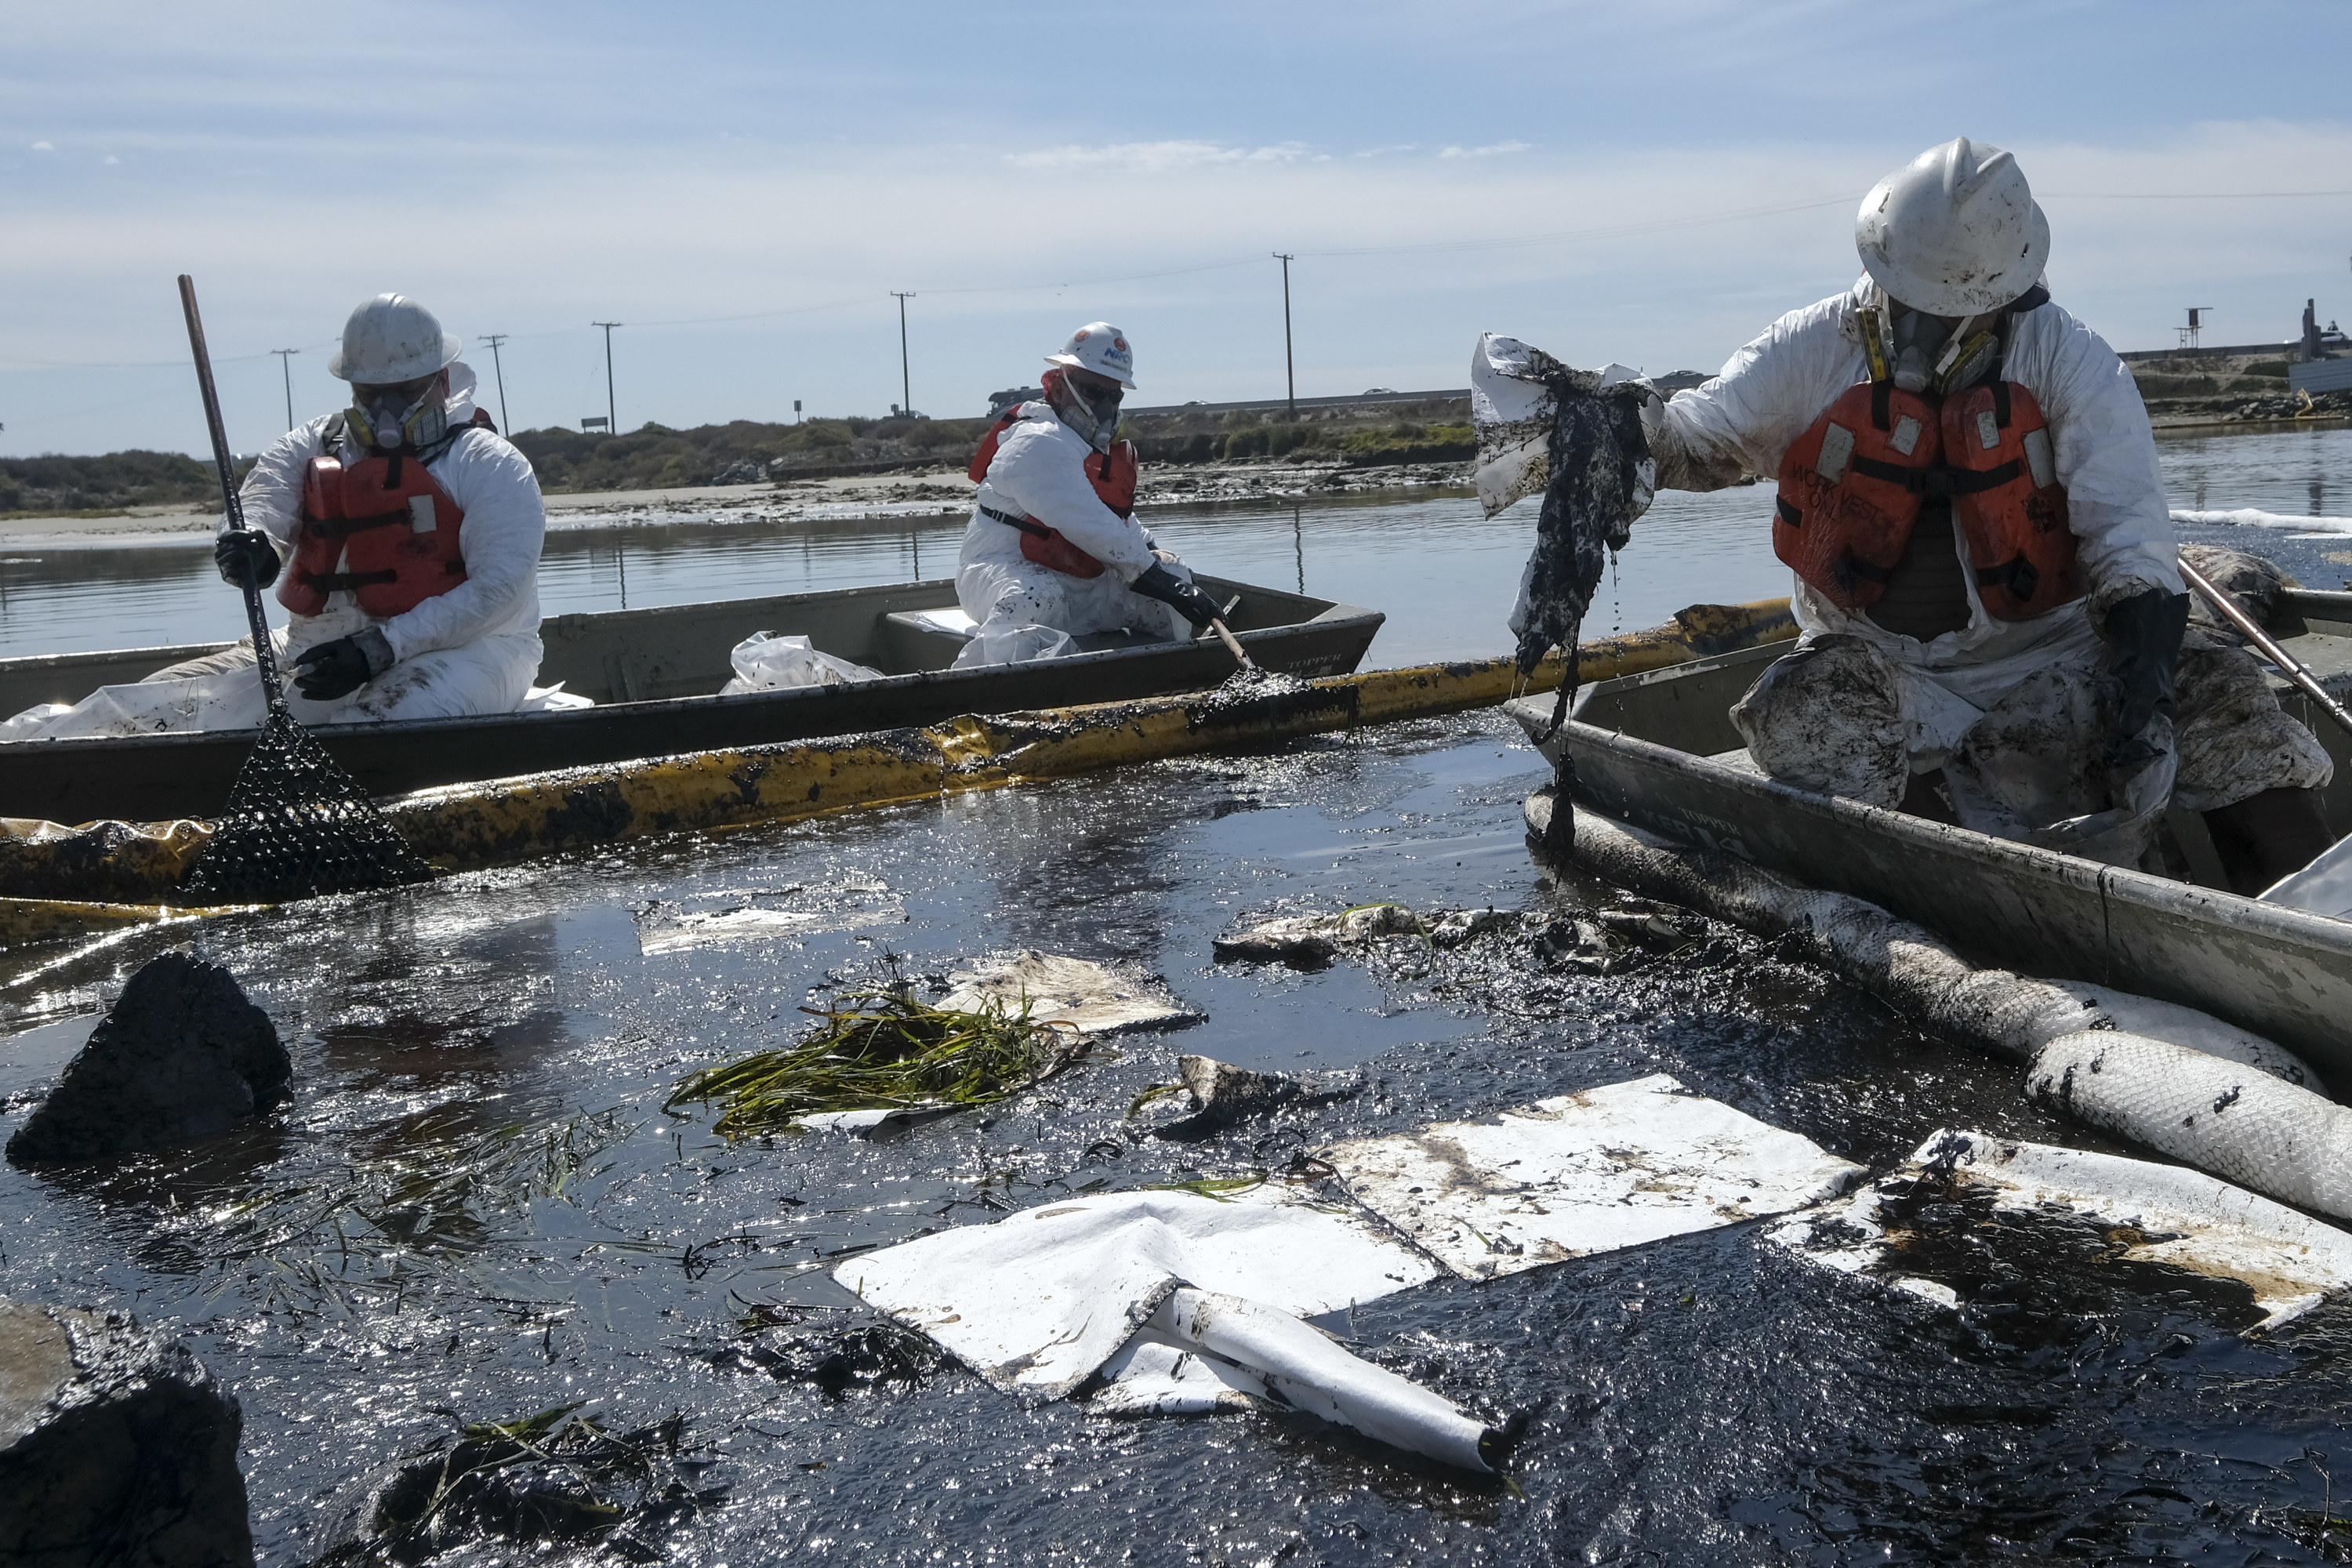 Workers in skiffs navigate oil-filled waters and attempt to clean up the mess from the oil spill